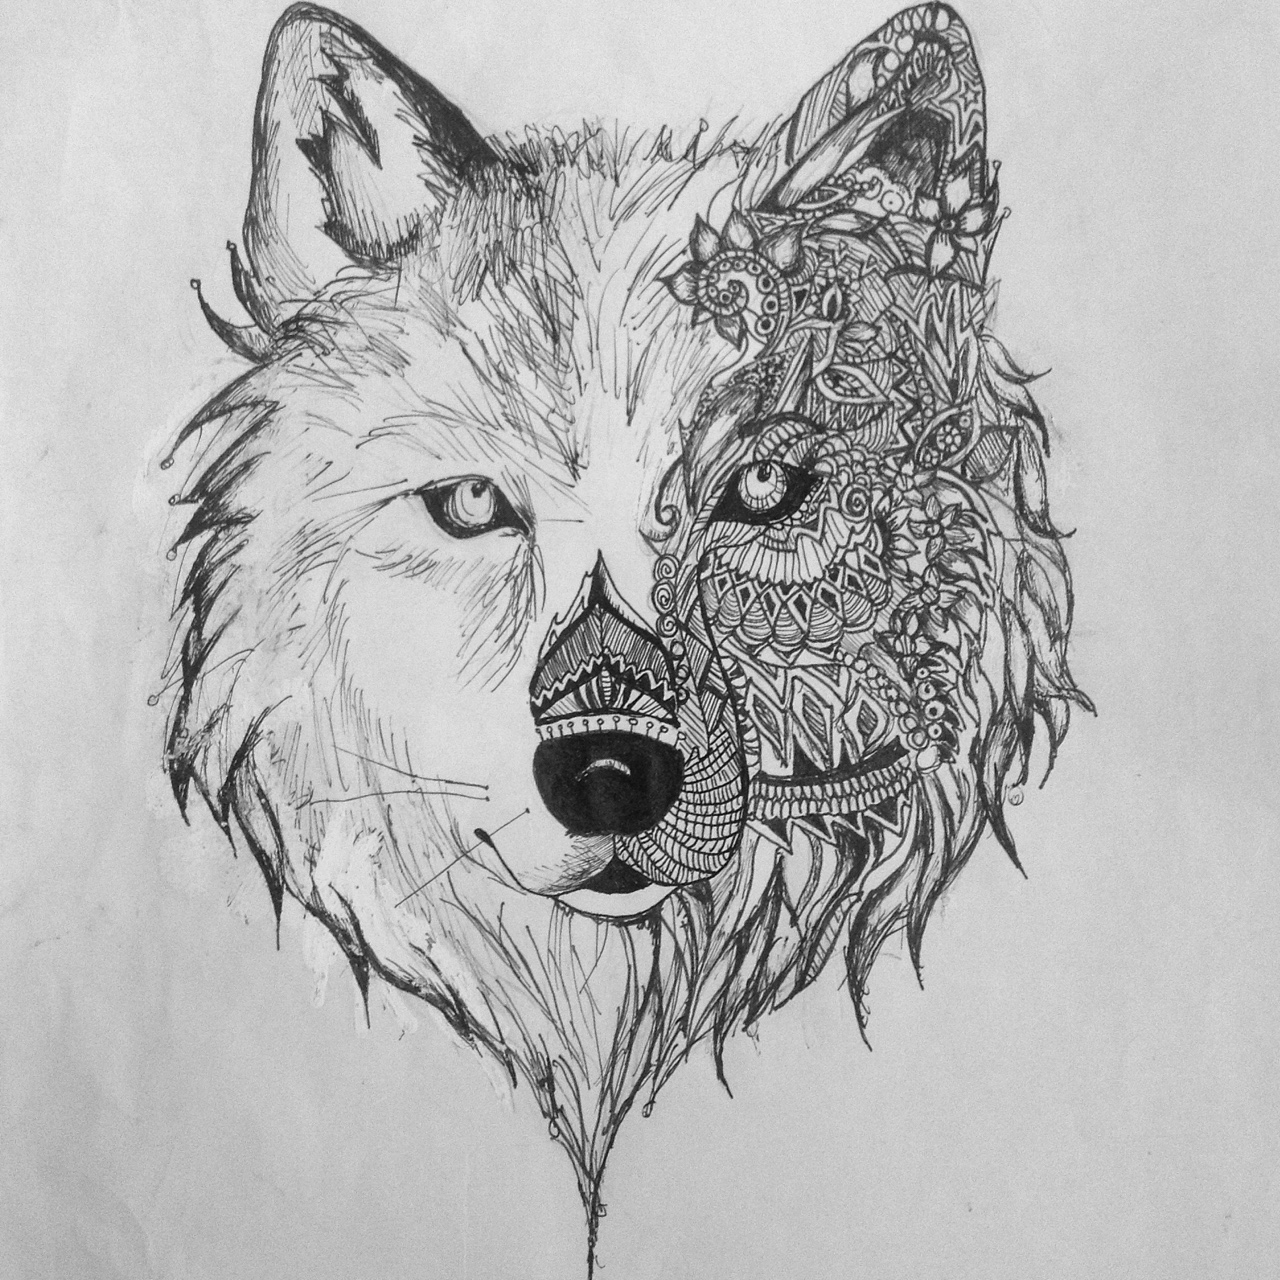 Drawn wallpaper wolf On I aztec year last